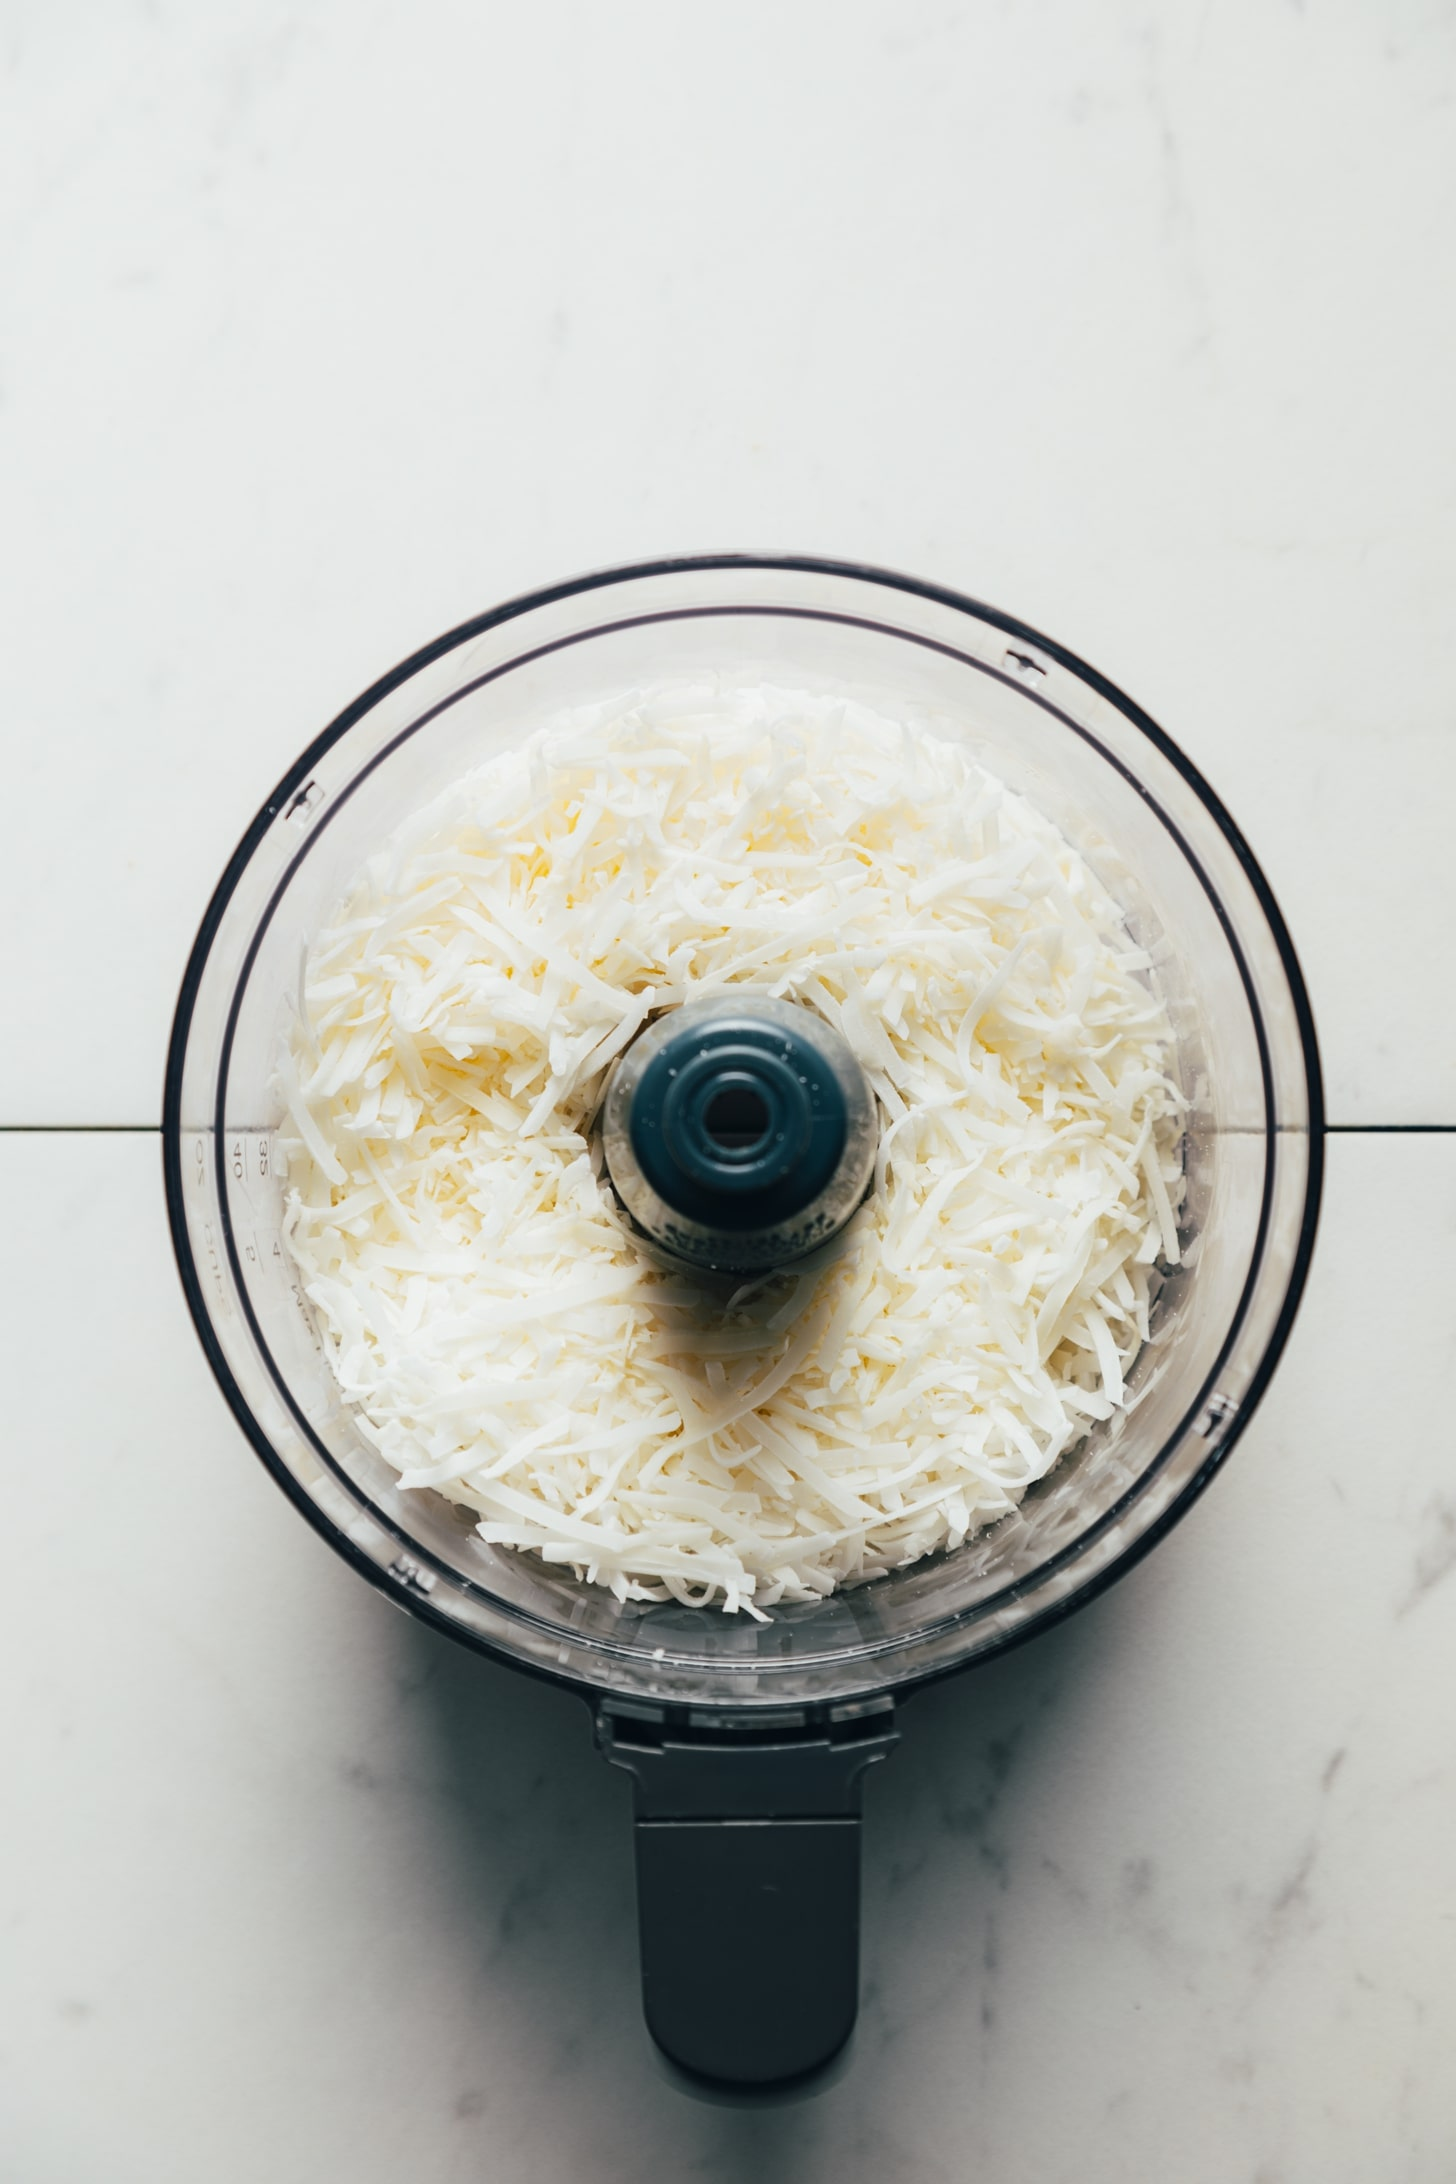 Shredded coconut in a food processor